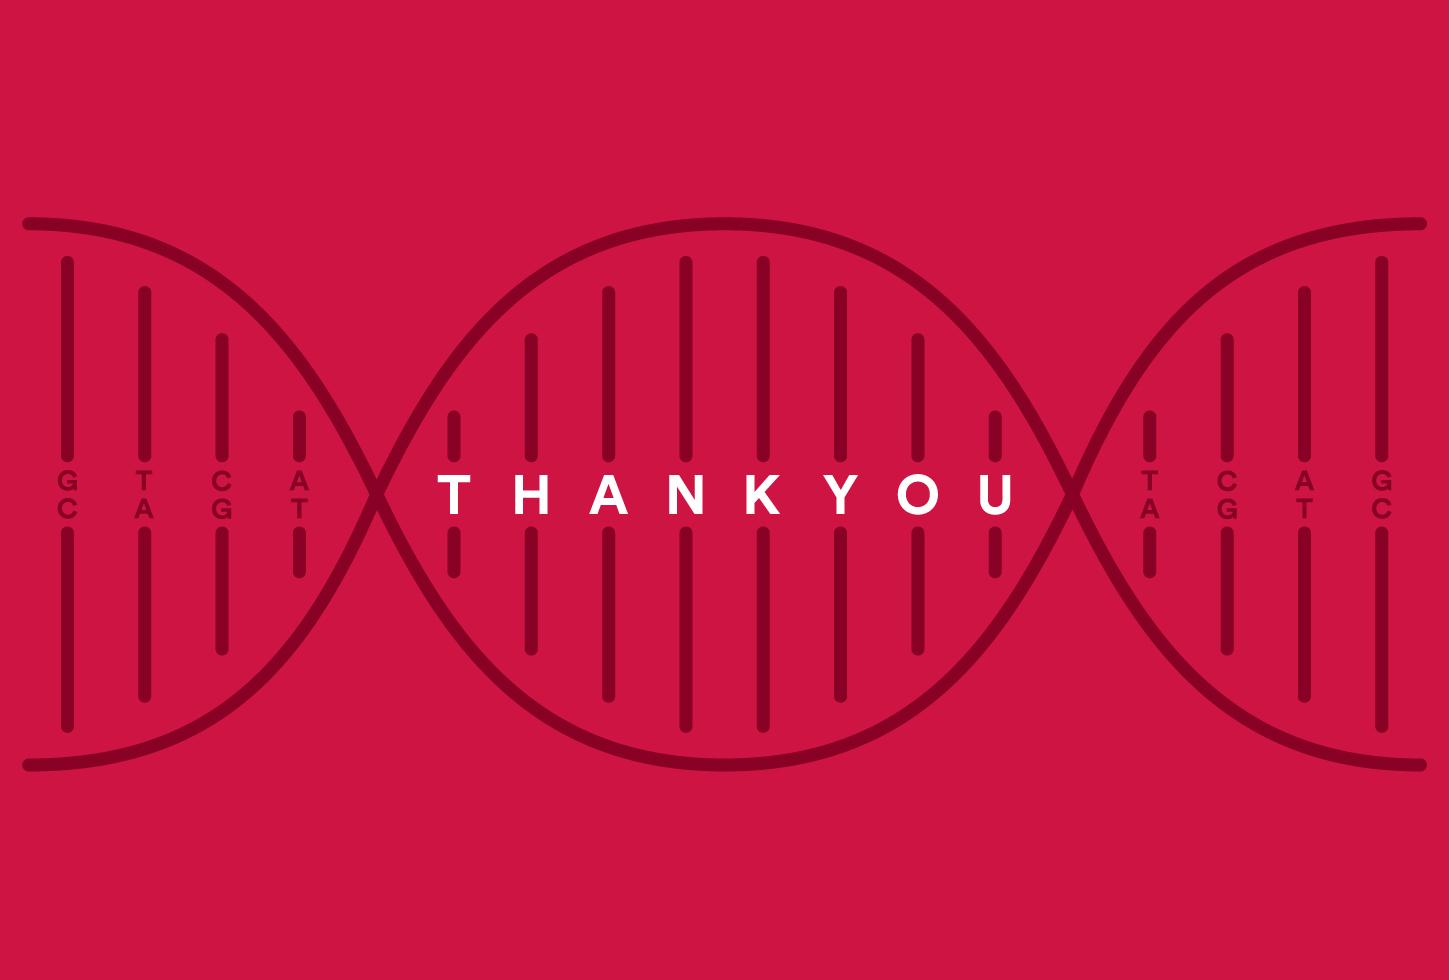 Morgridge thank you card design